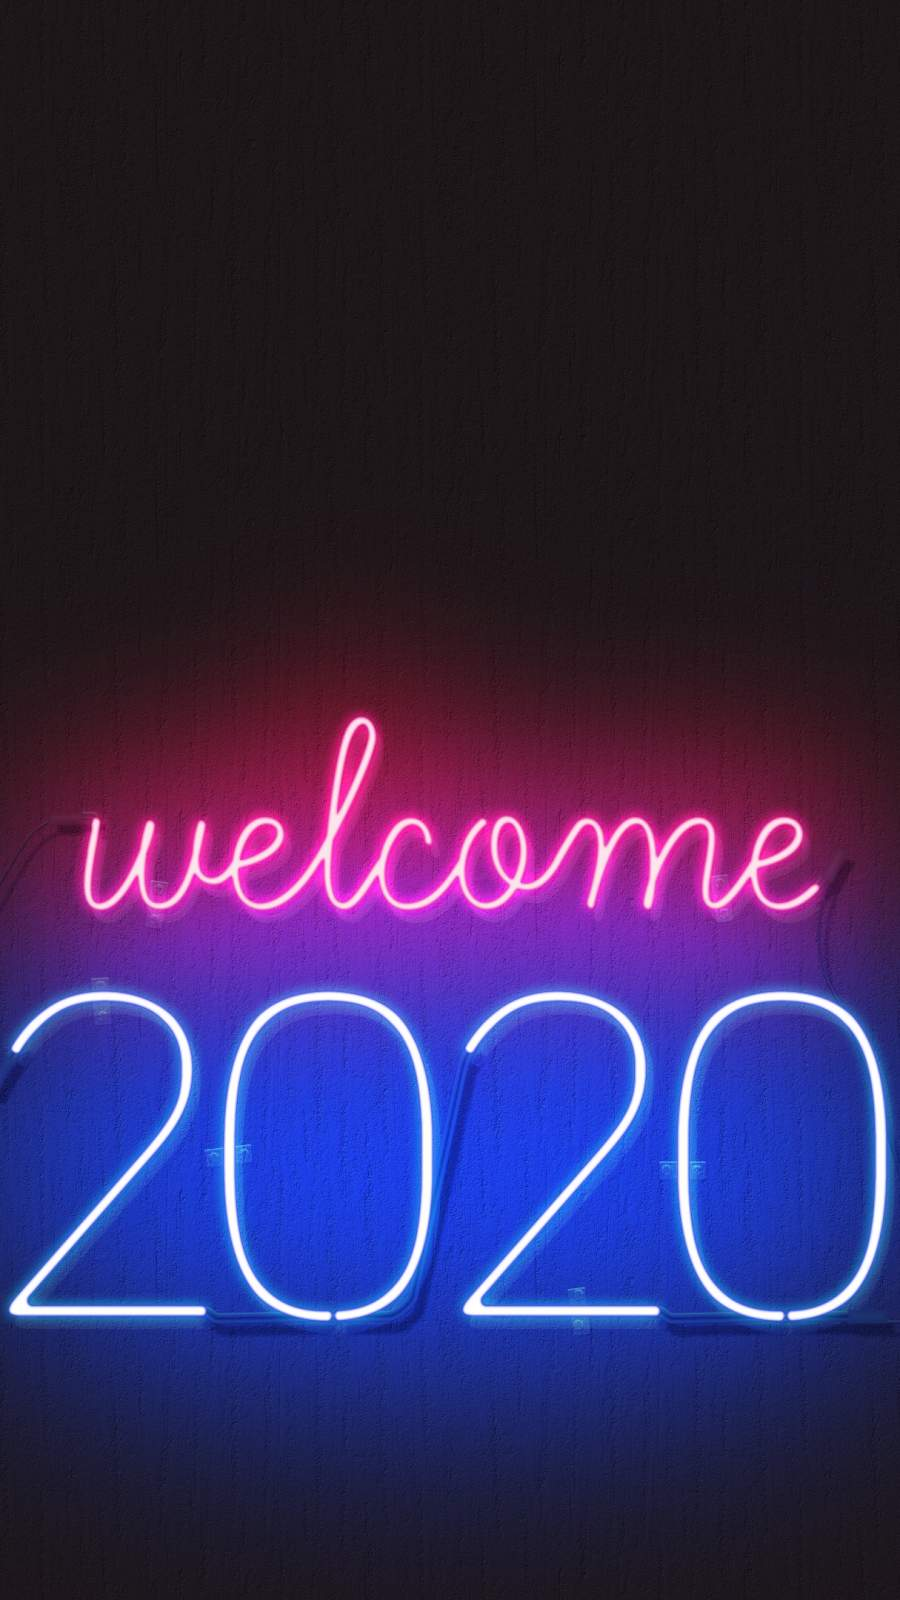 Welcome 2020 iPhone Wallpaper - iPhone Wallpapers : iPhone ...